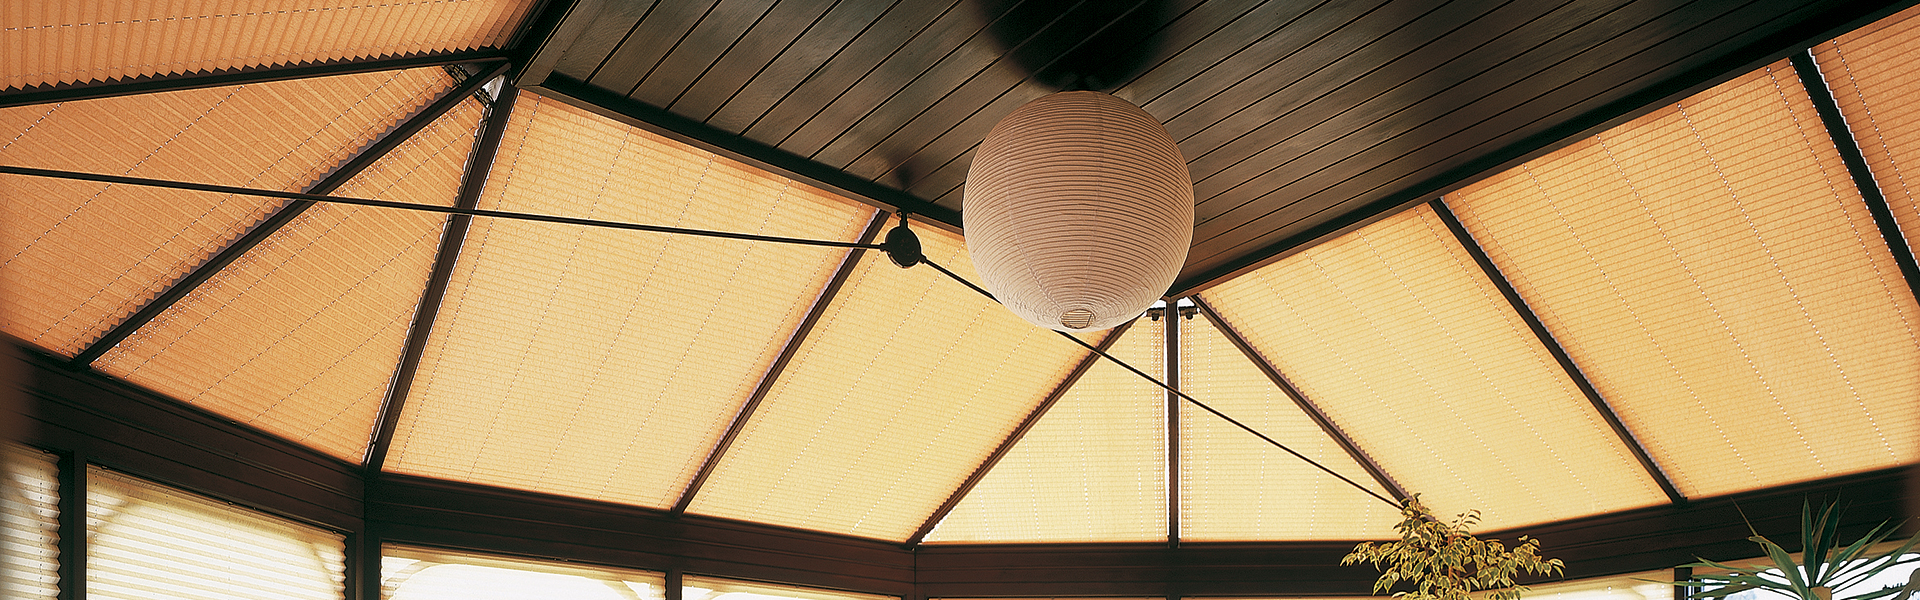 conservatory-roof-blinds-hero-1